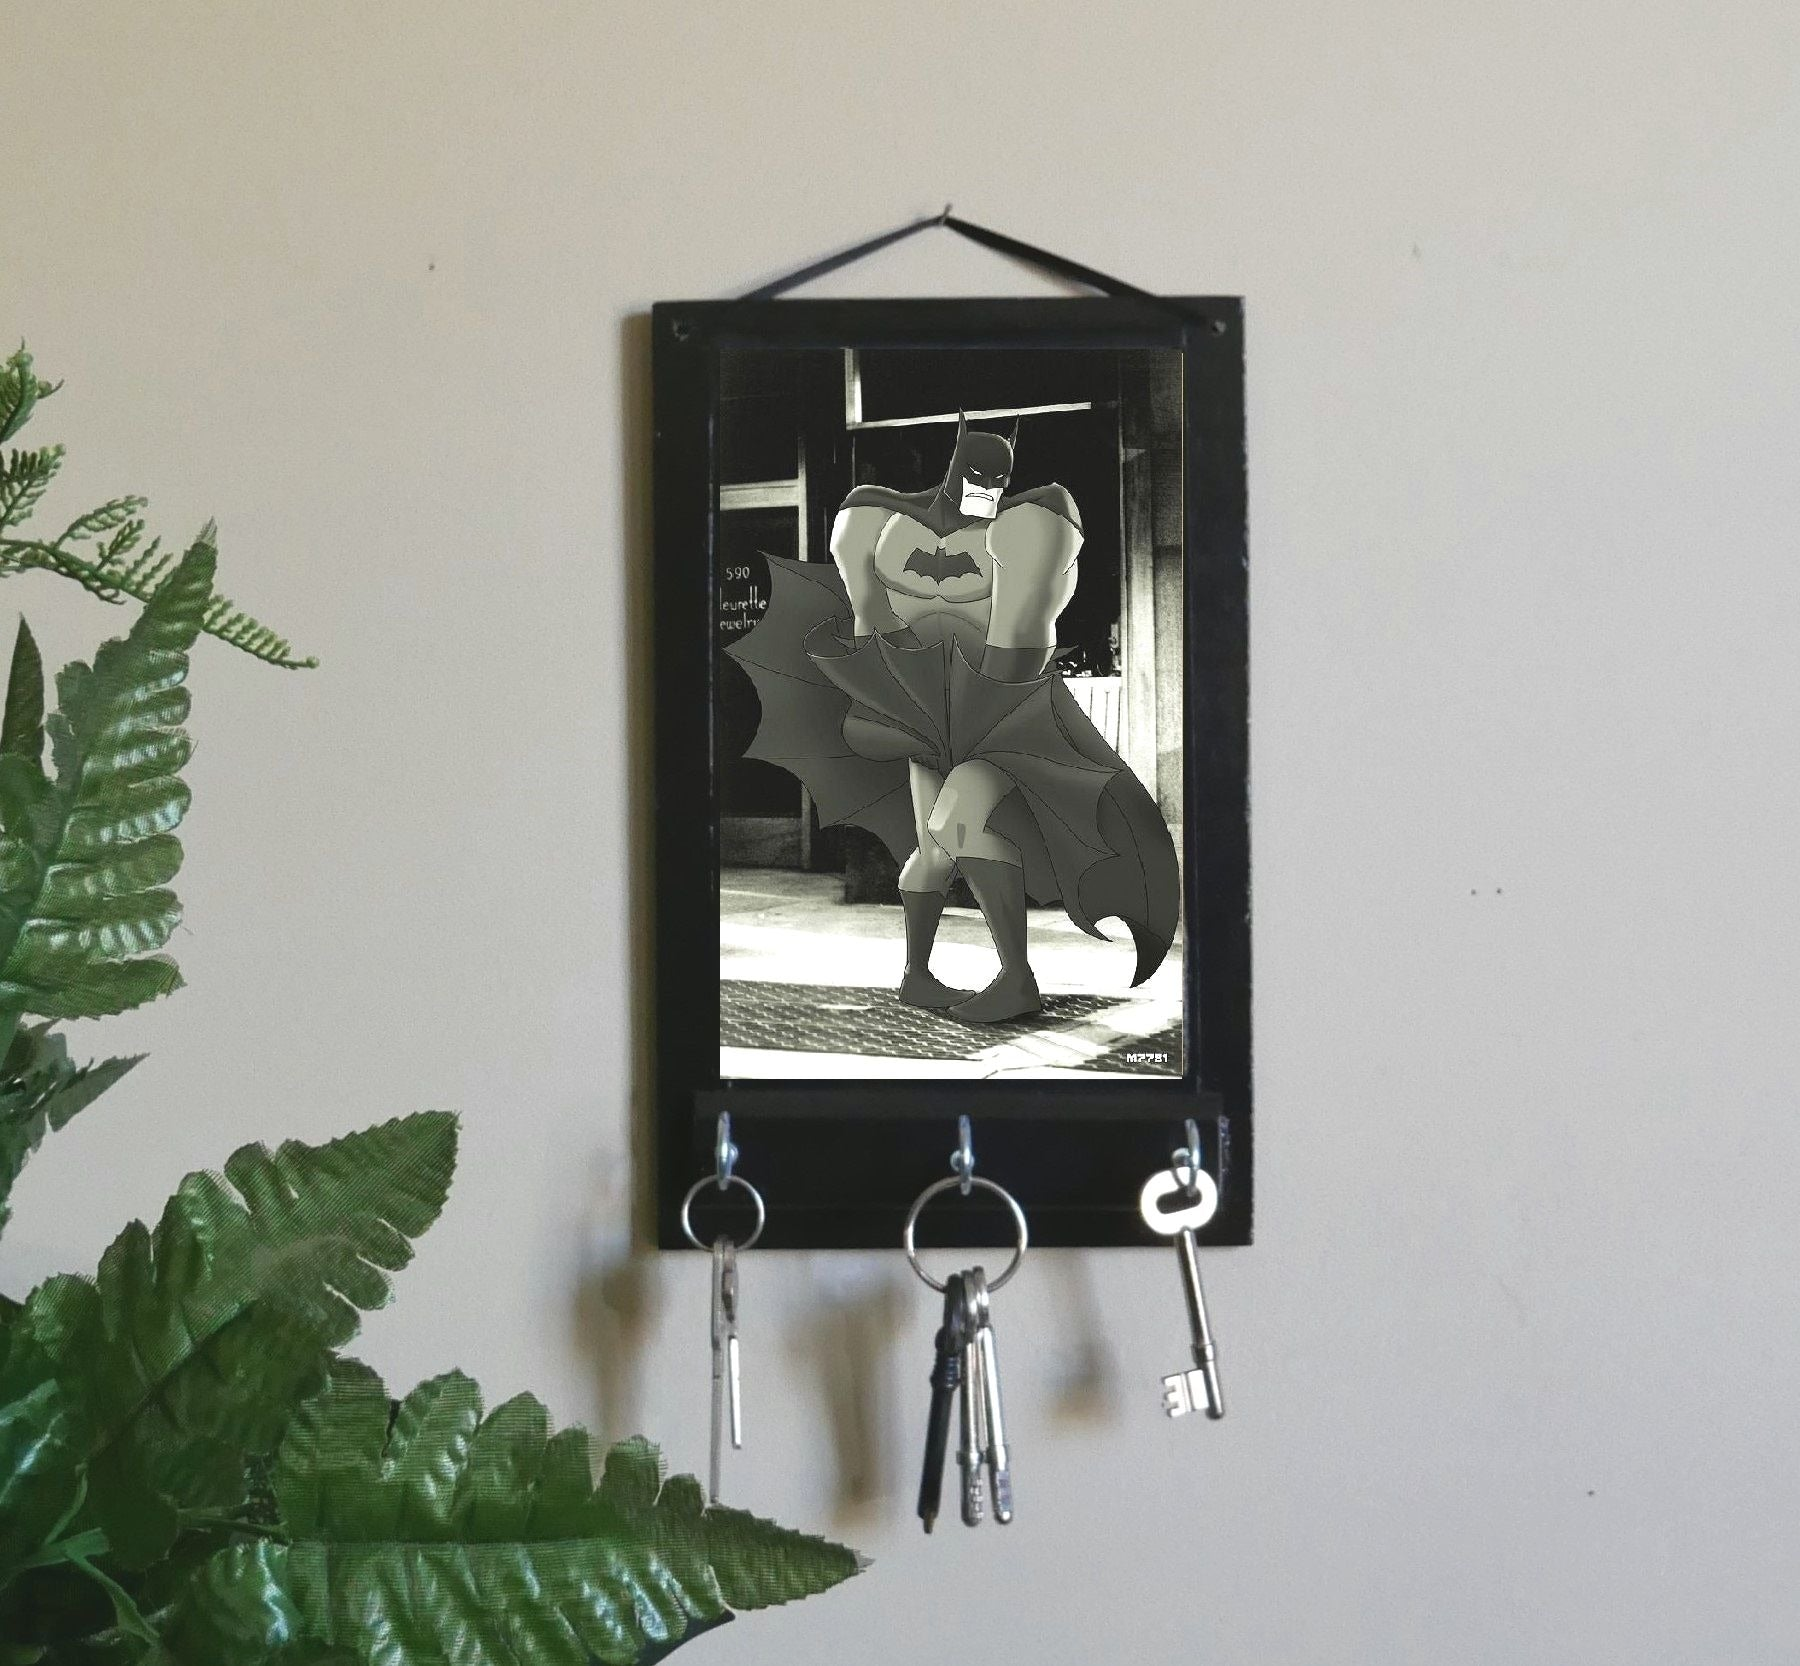 Entryway-Organizer-Marilyn-Monroe-Batman-Key-Rack-Nchanted-Gifts